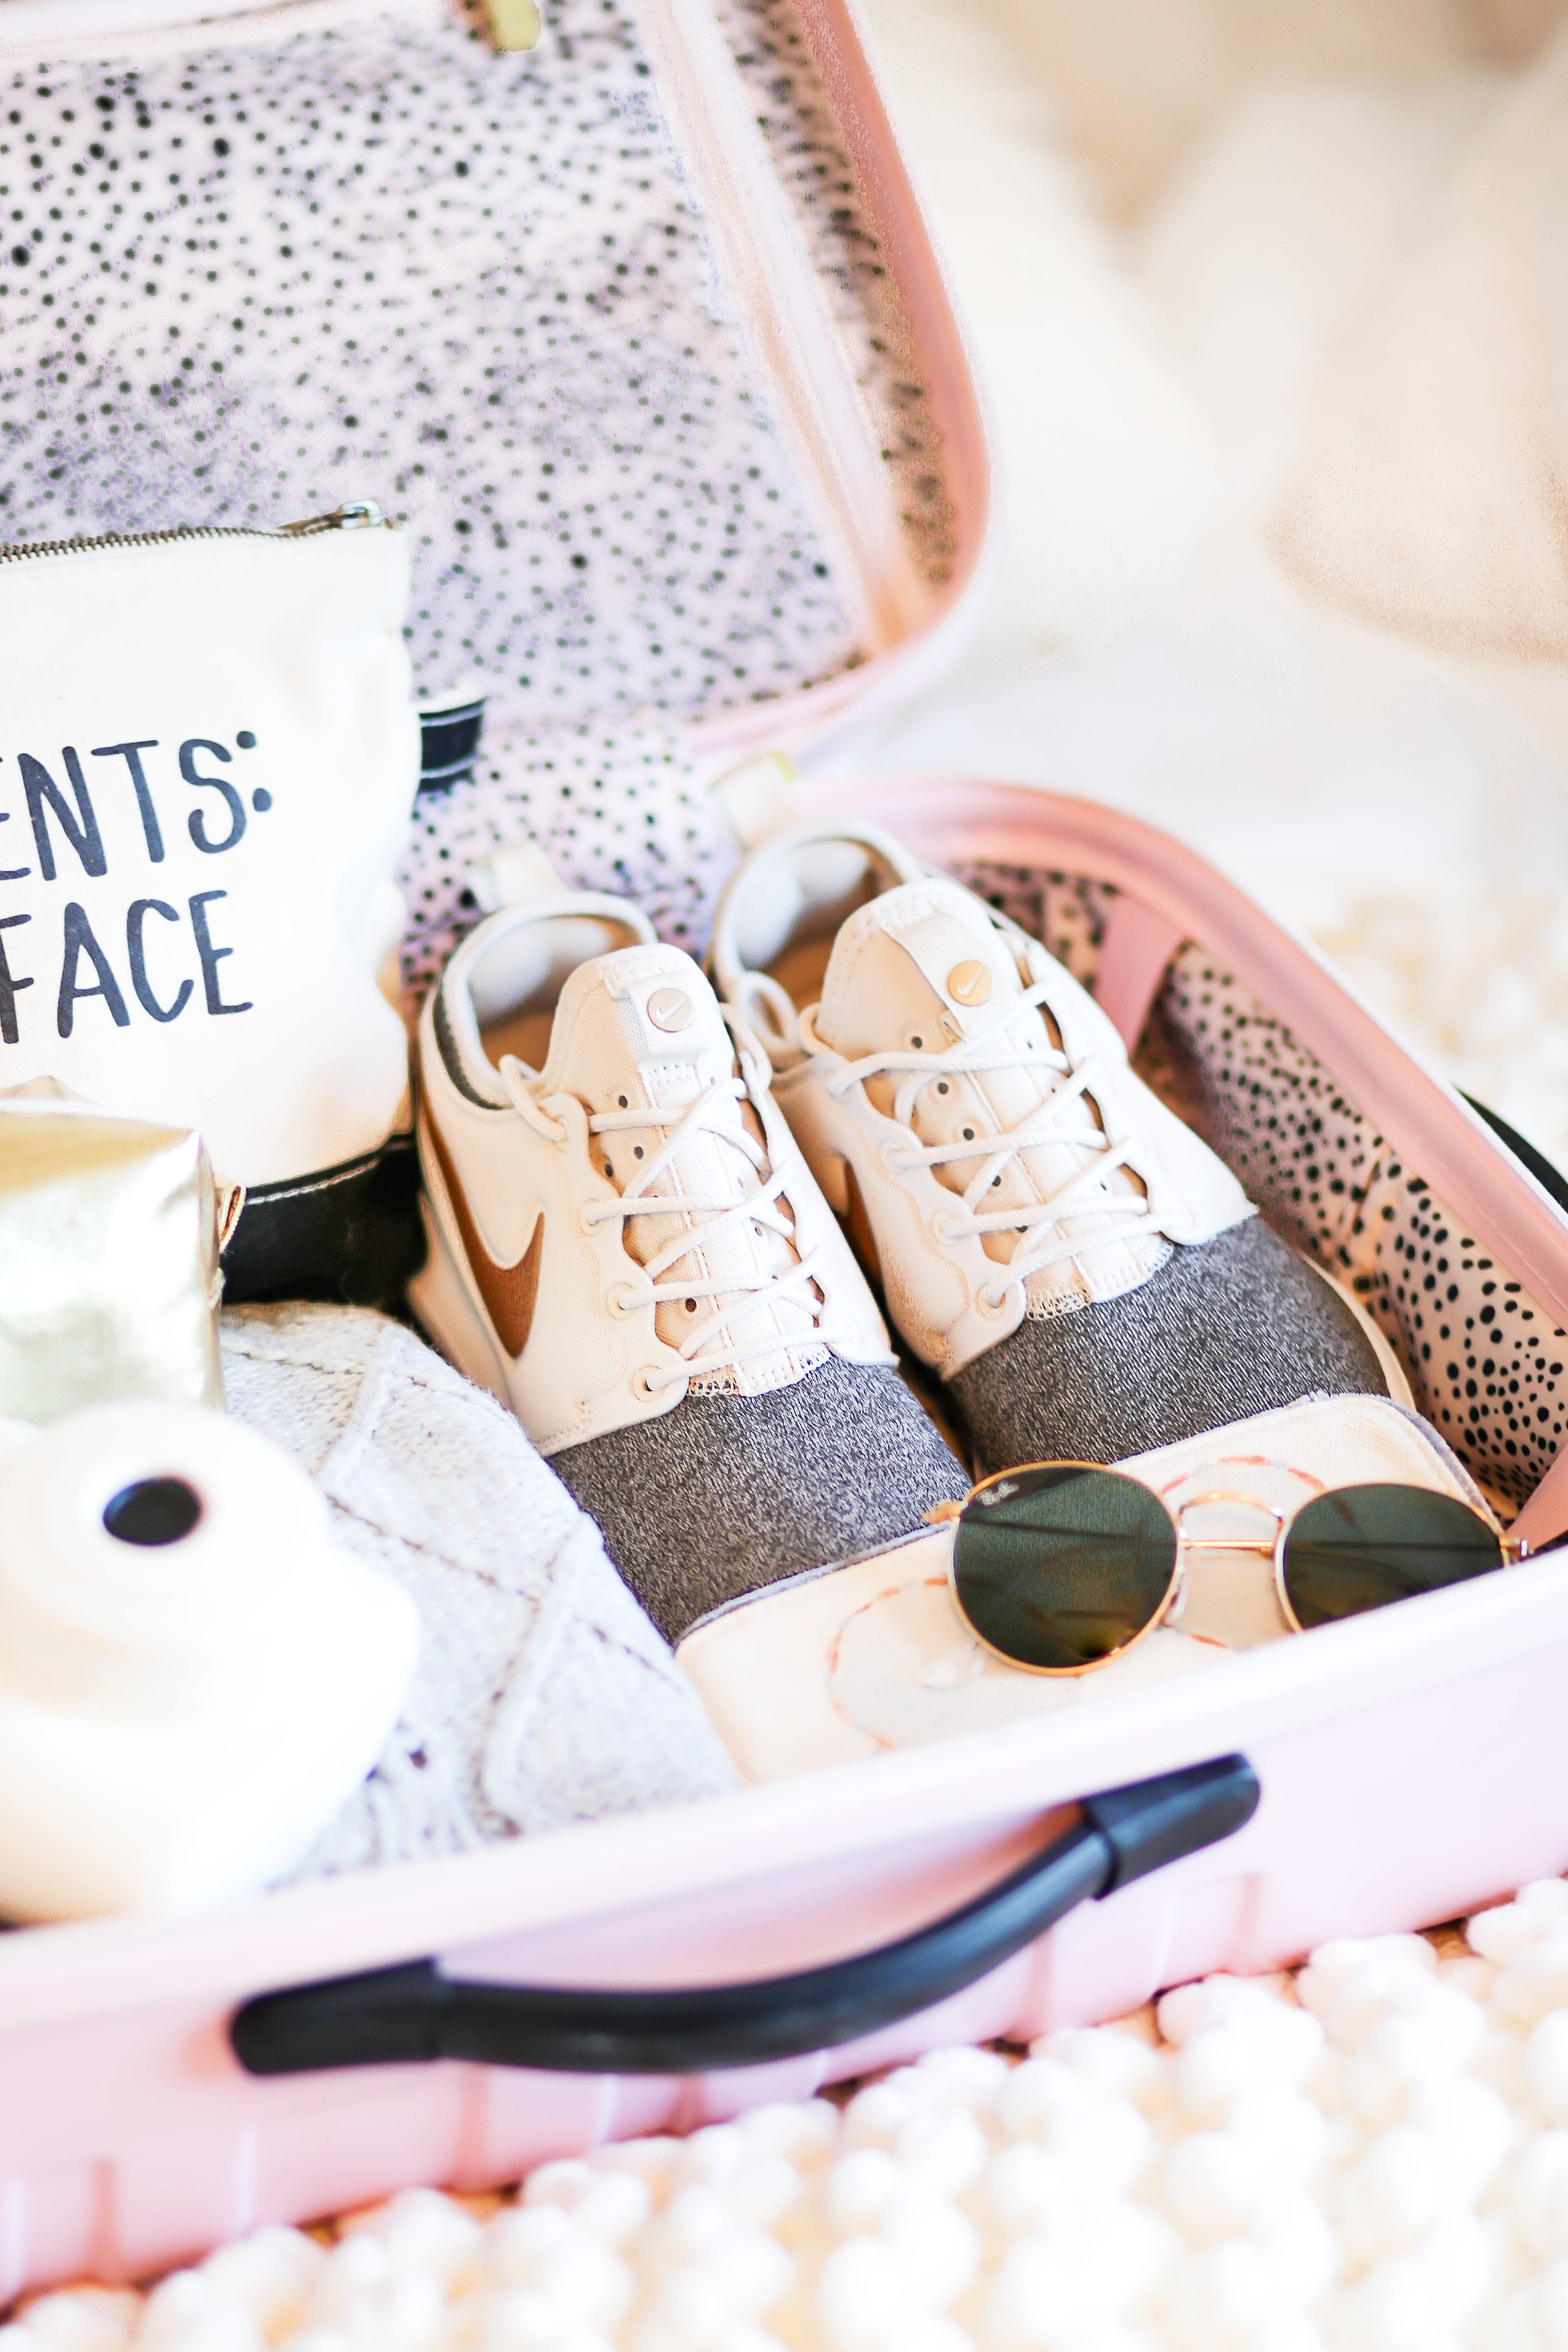 suitcase packing pink suitcase packed suitcase cute suitcase packing tips daily dose of charm lauren lindmark